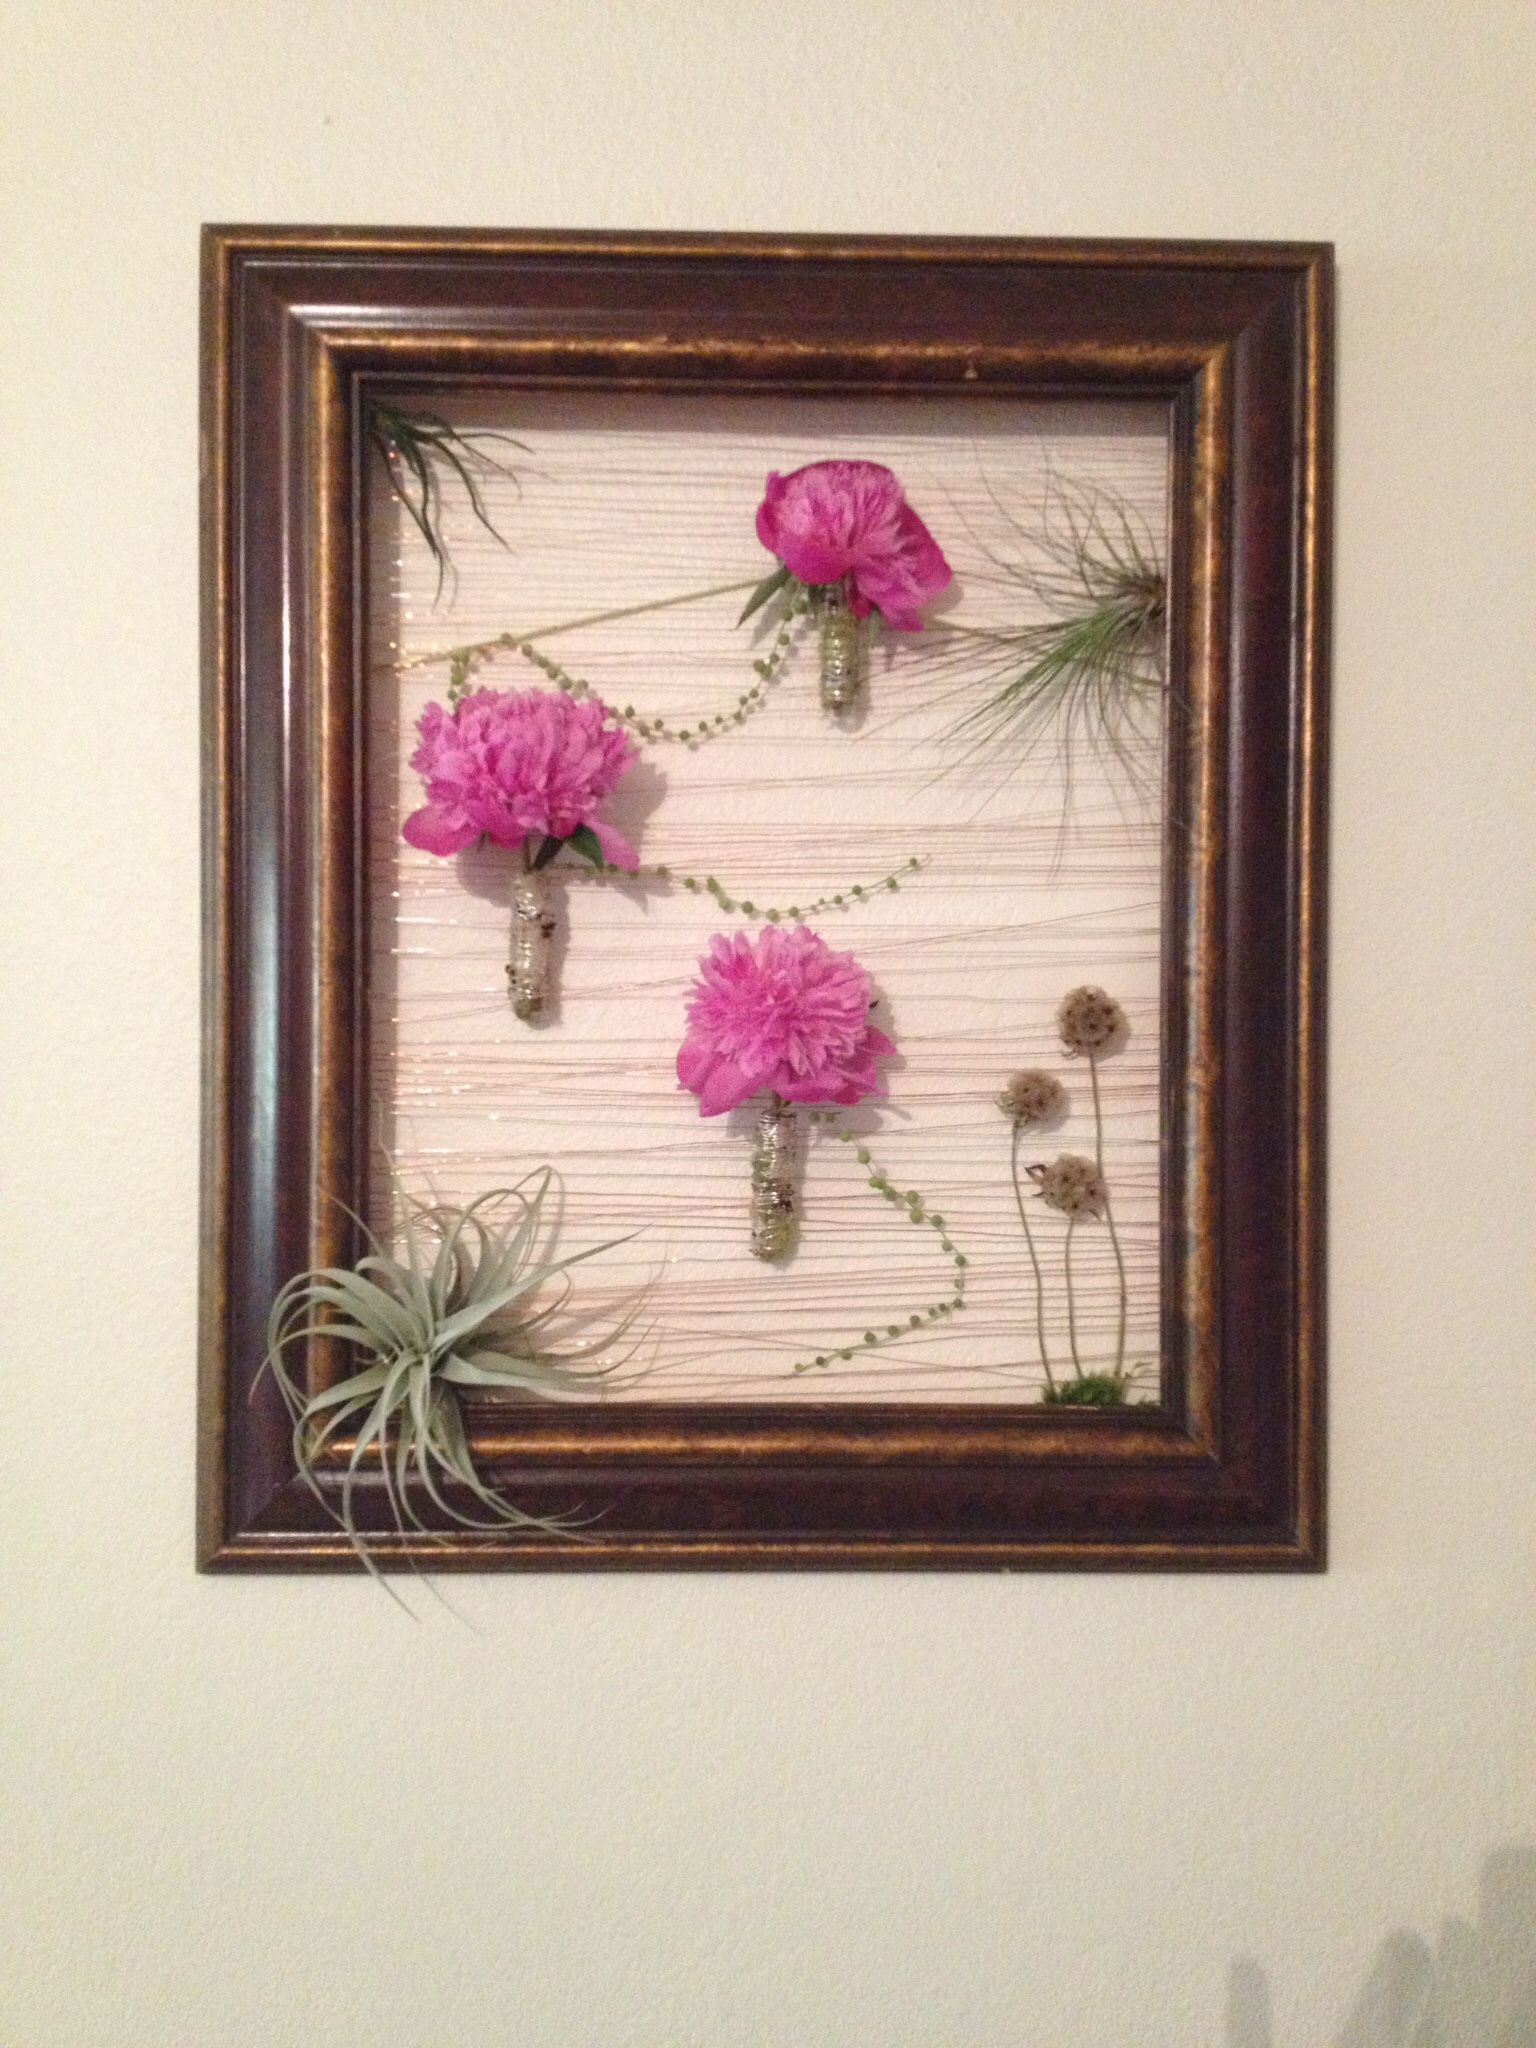 Large Wall Frame With Peonies Is Mossy Tubes, Scabiosa And